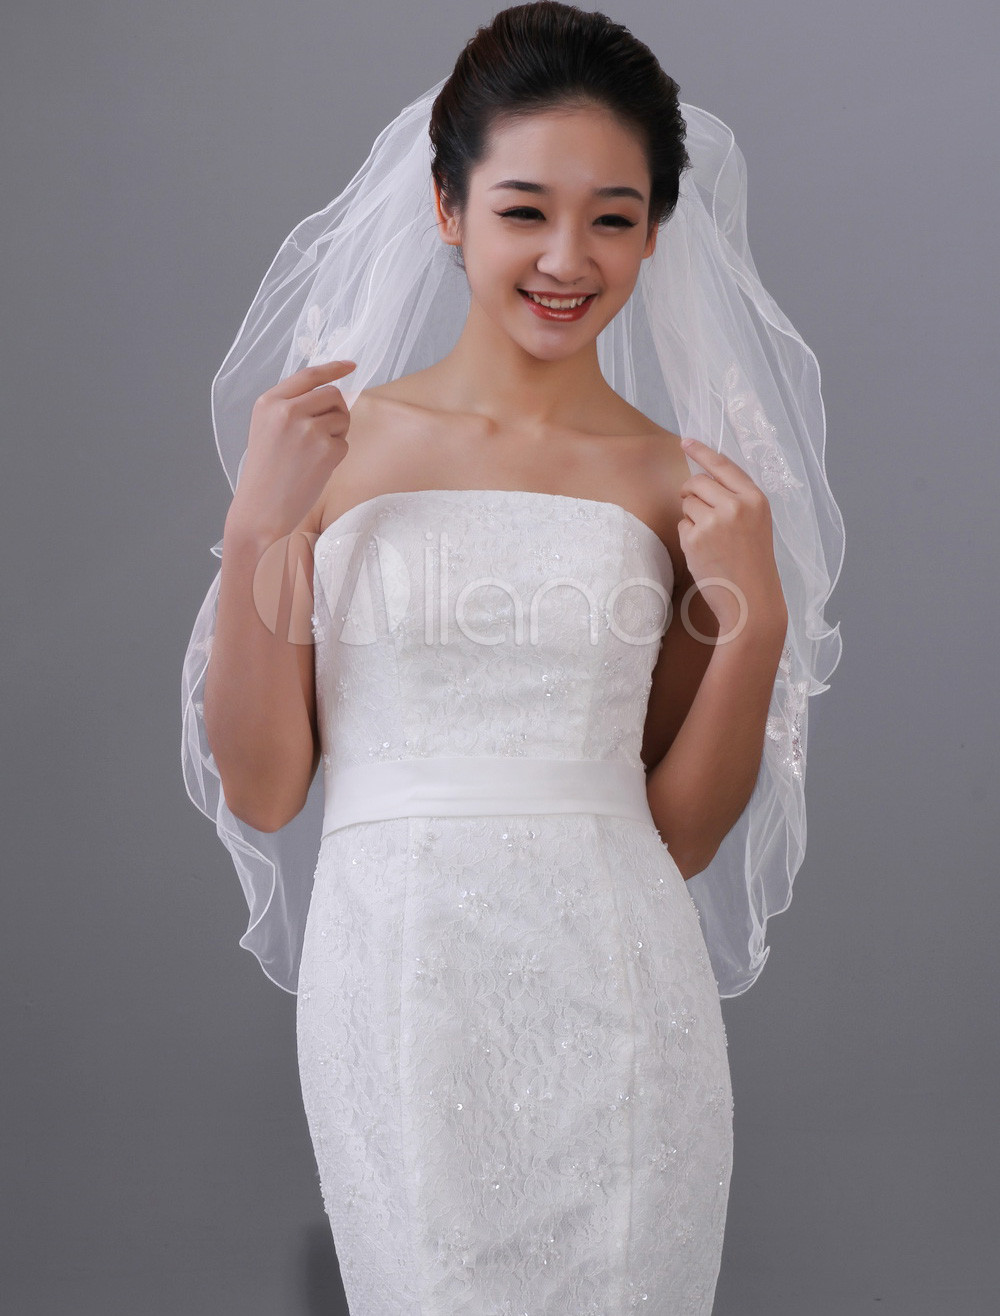 White Two-Tier Beading Tulle Applique Wedding Veil